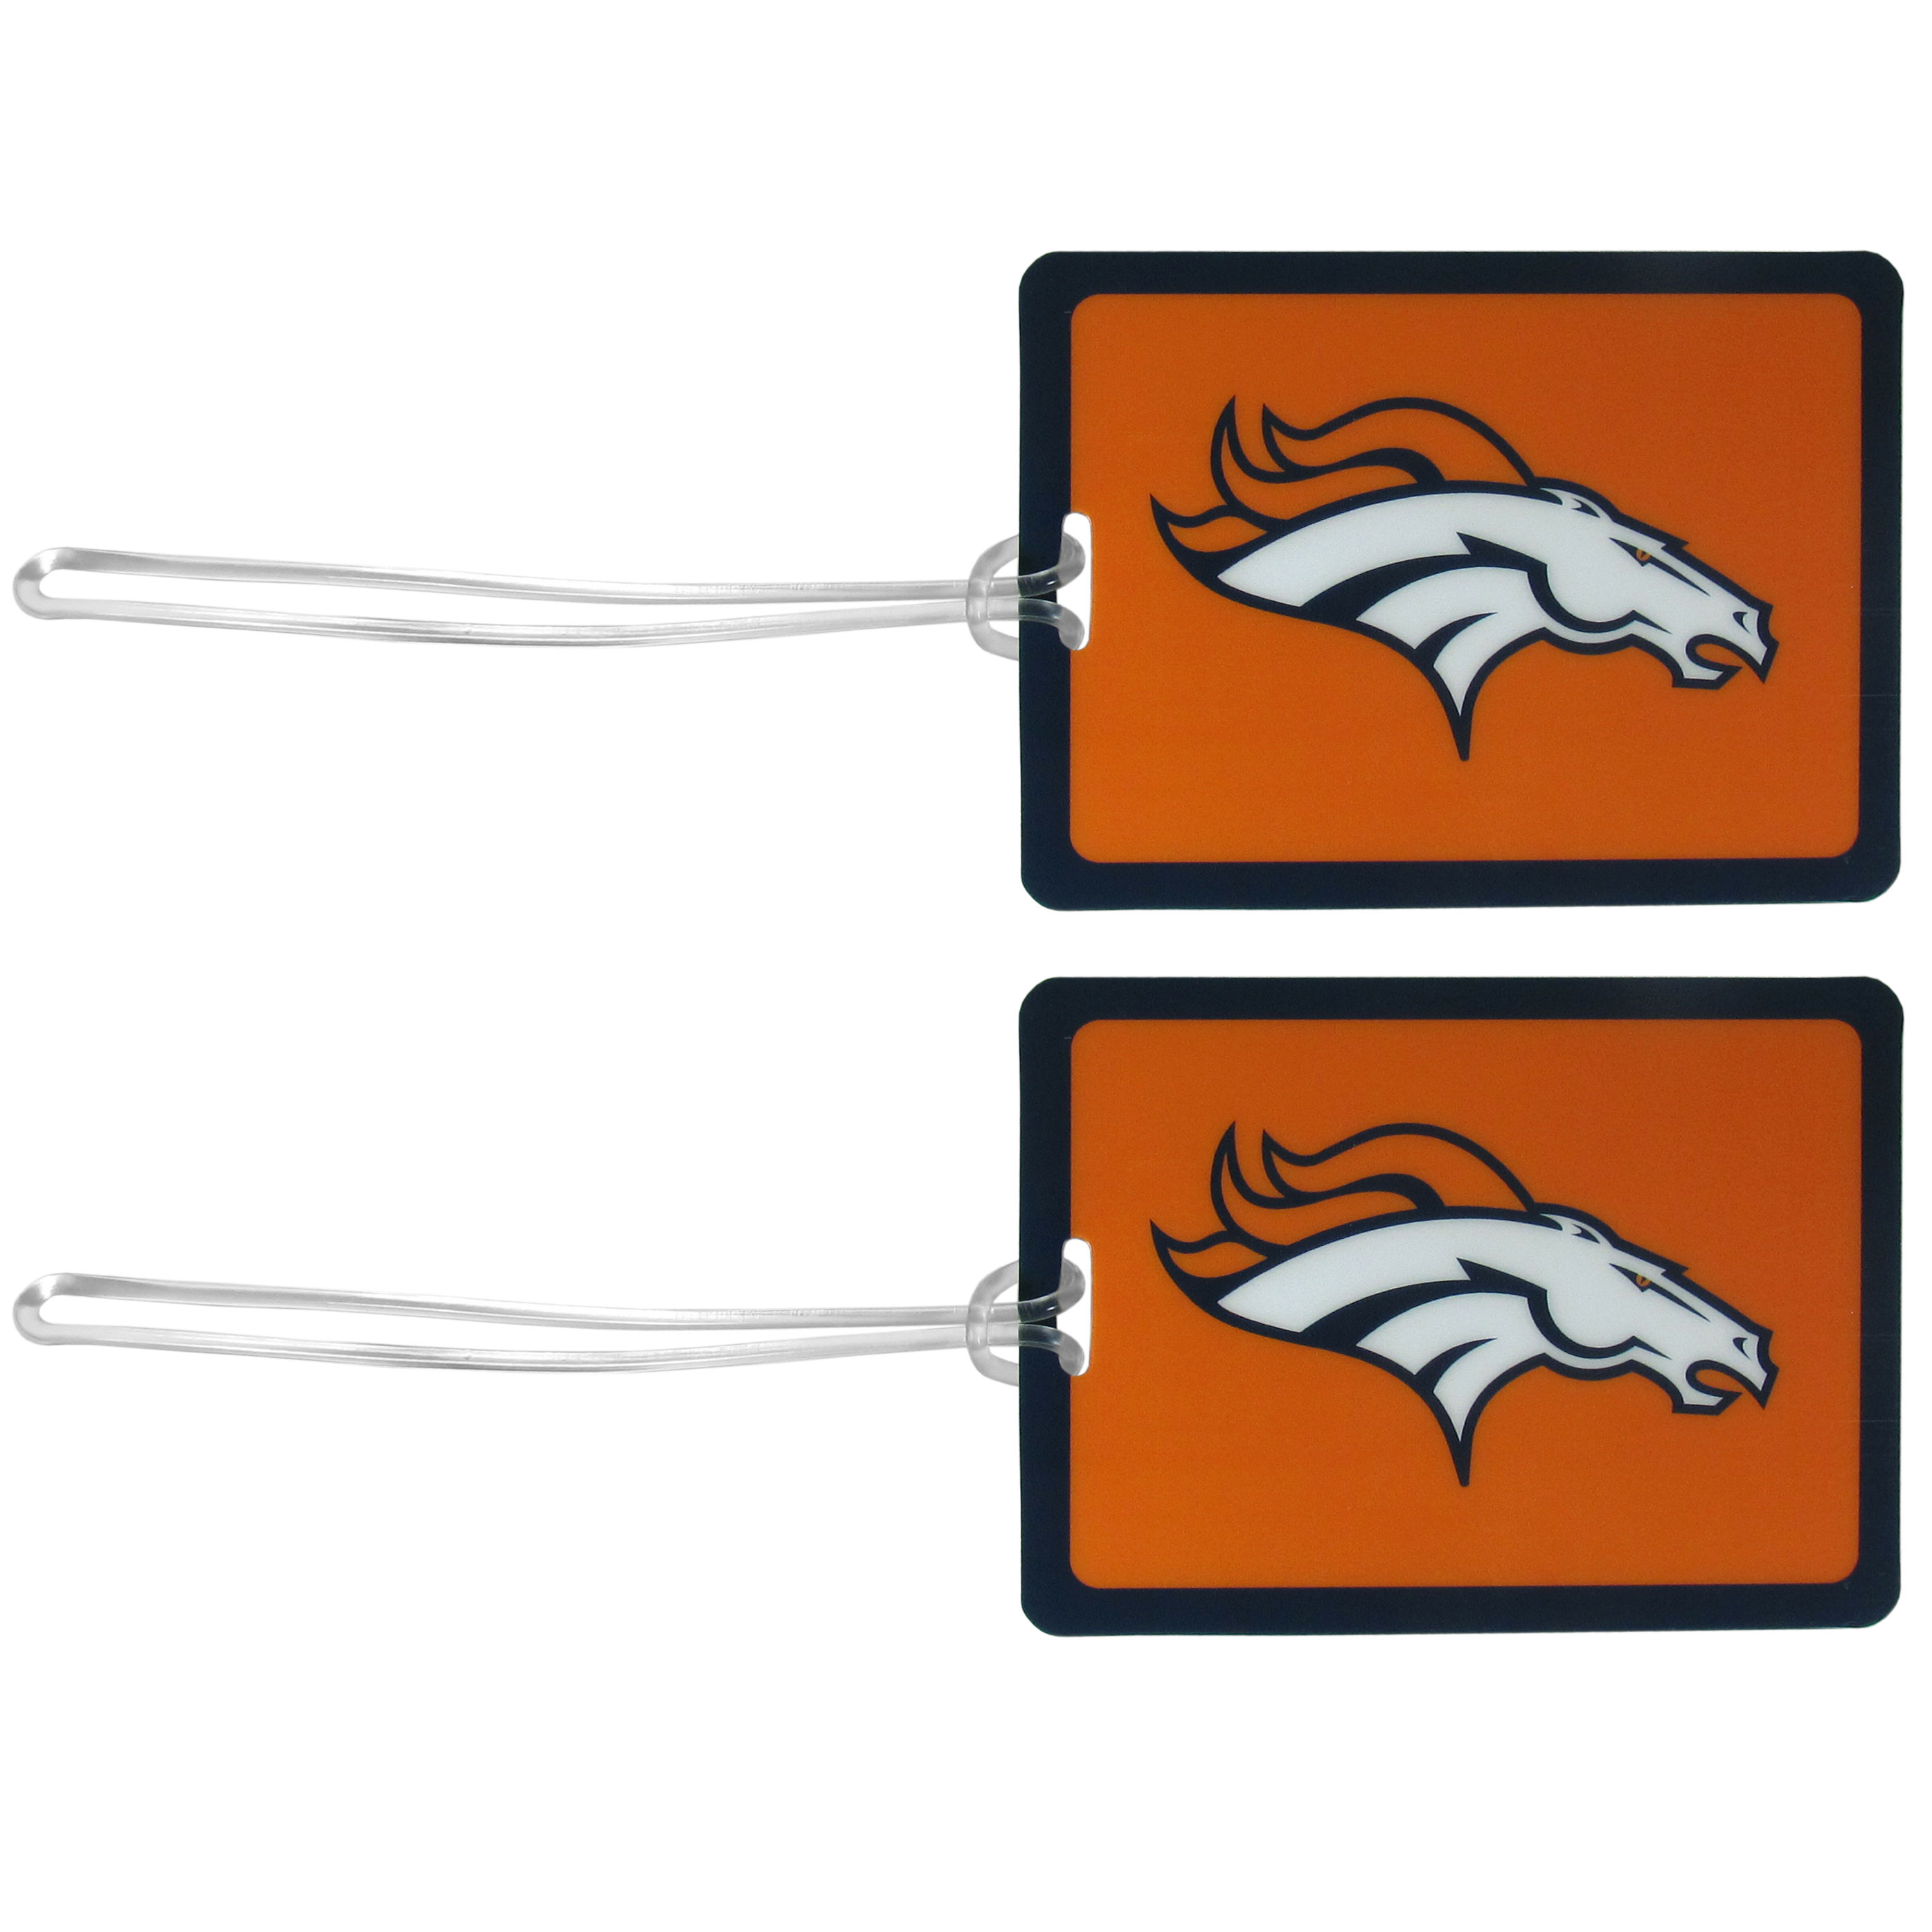 Denver Broncos Vinyl Luggage Tag, 2pk - Tired of trying to spot your suitcase or bag in a sea of luggage? Try our large and colorful Denver Broncos luggage tags. The tag is 4x3 inches and has a 5 inch cord to attach it easily to your bags, backpacks or luggage. The front of the tag features the team logo in a bright, team colored background and you can write you name, address and phone number on the back of the tag.